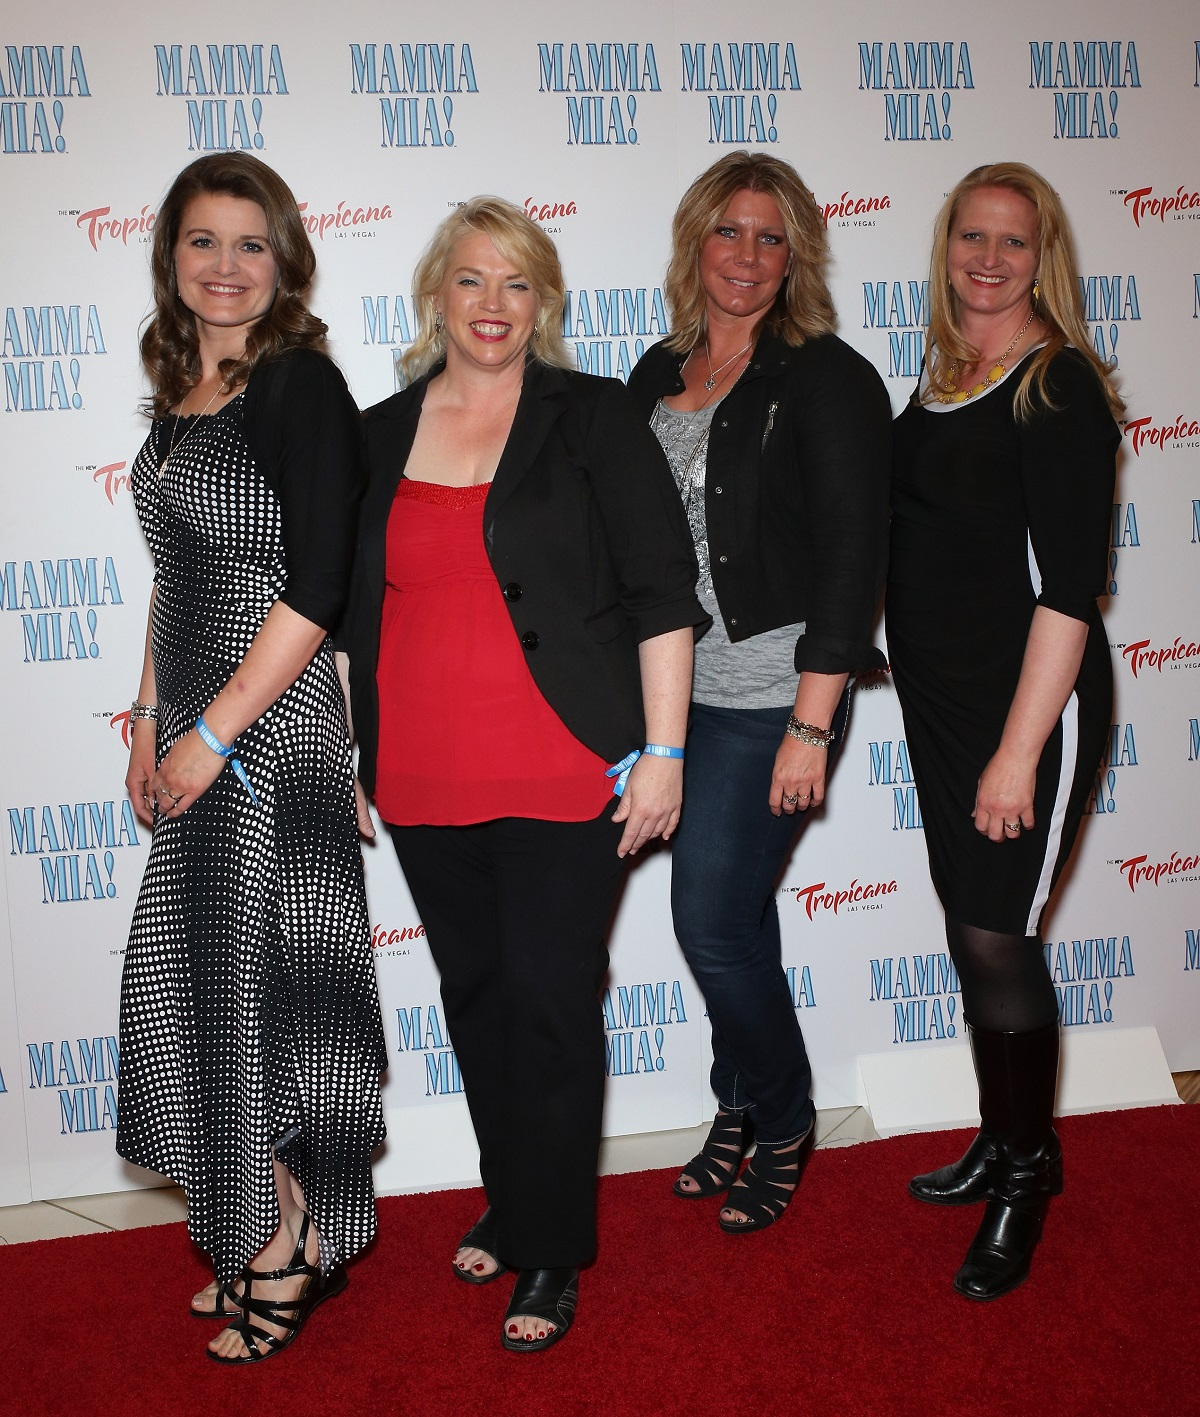 """obyn Brown, Janelle Brown Meri Brown and Christine Brown from """"Sister Wives"""" arrive at the grand opening of the show """"Mamma Mia!"""" at the New Tropicana Las Vegas on May 16, 2014 in Las Vegas, Nevada"""